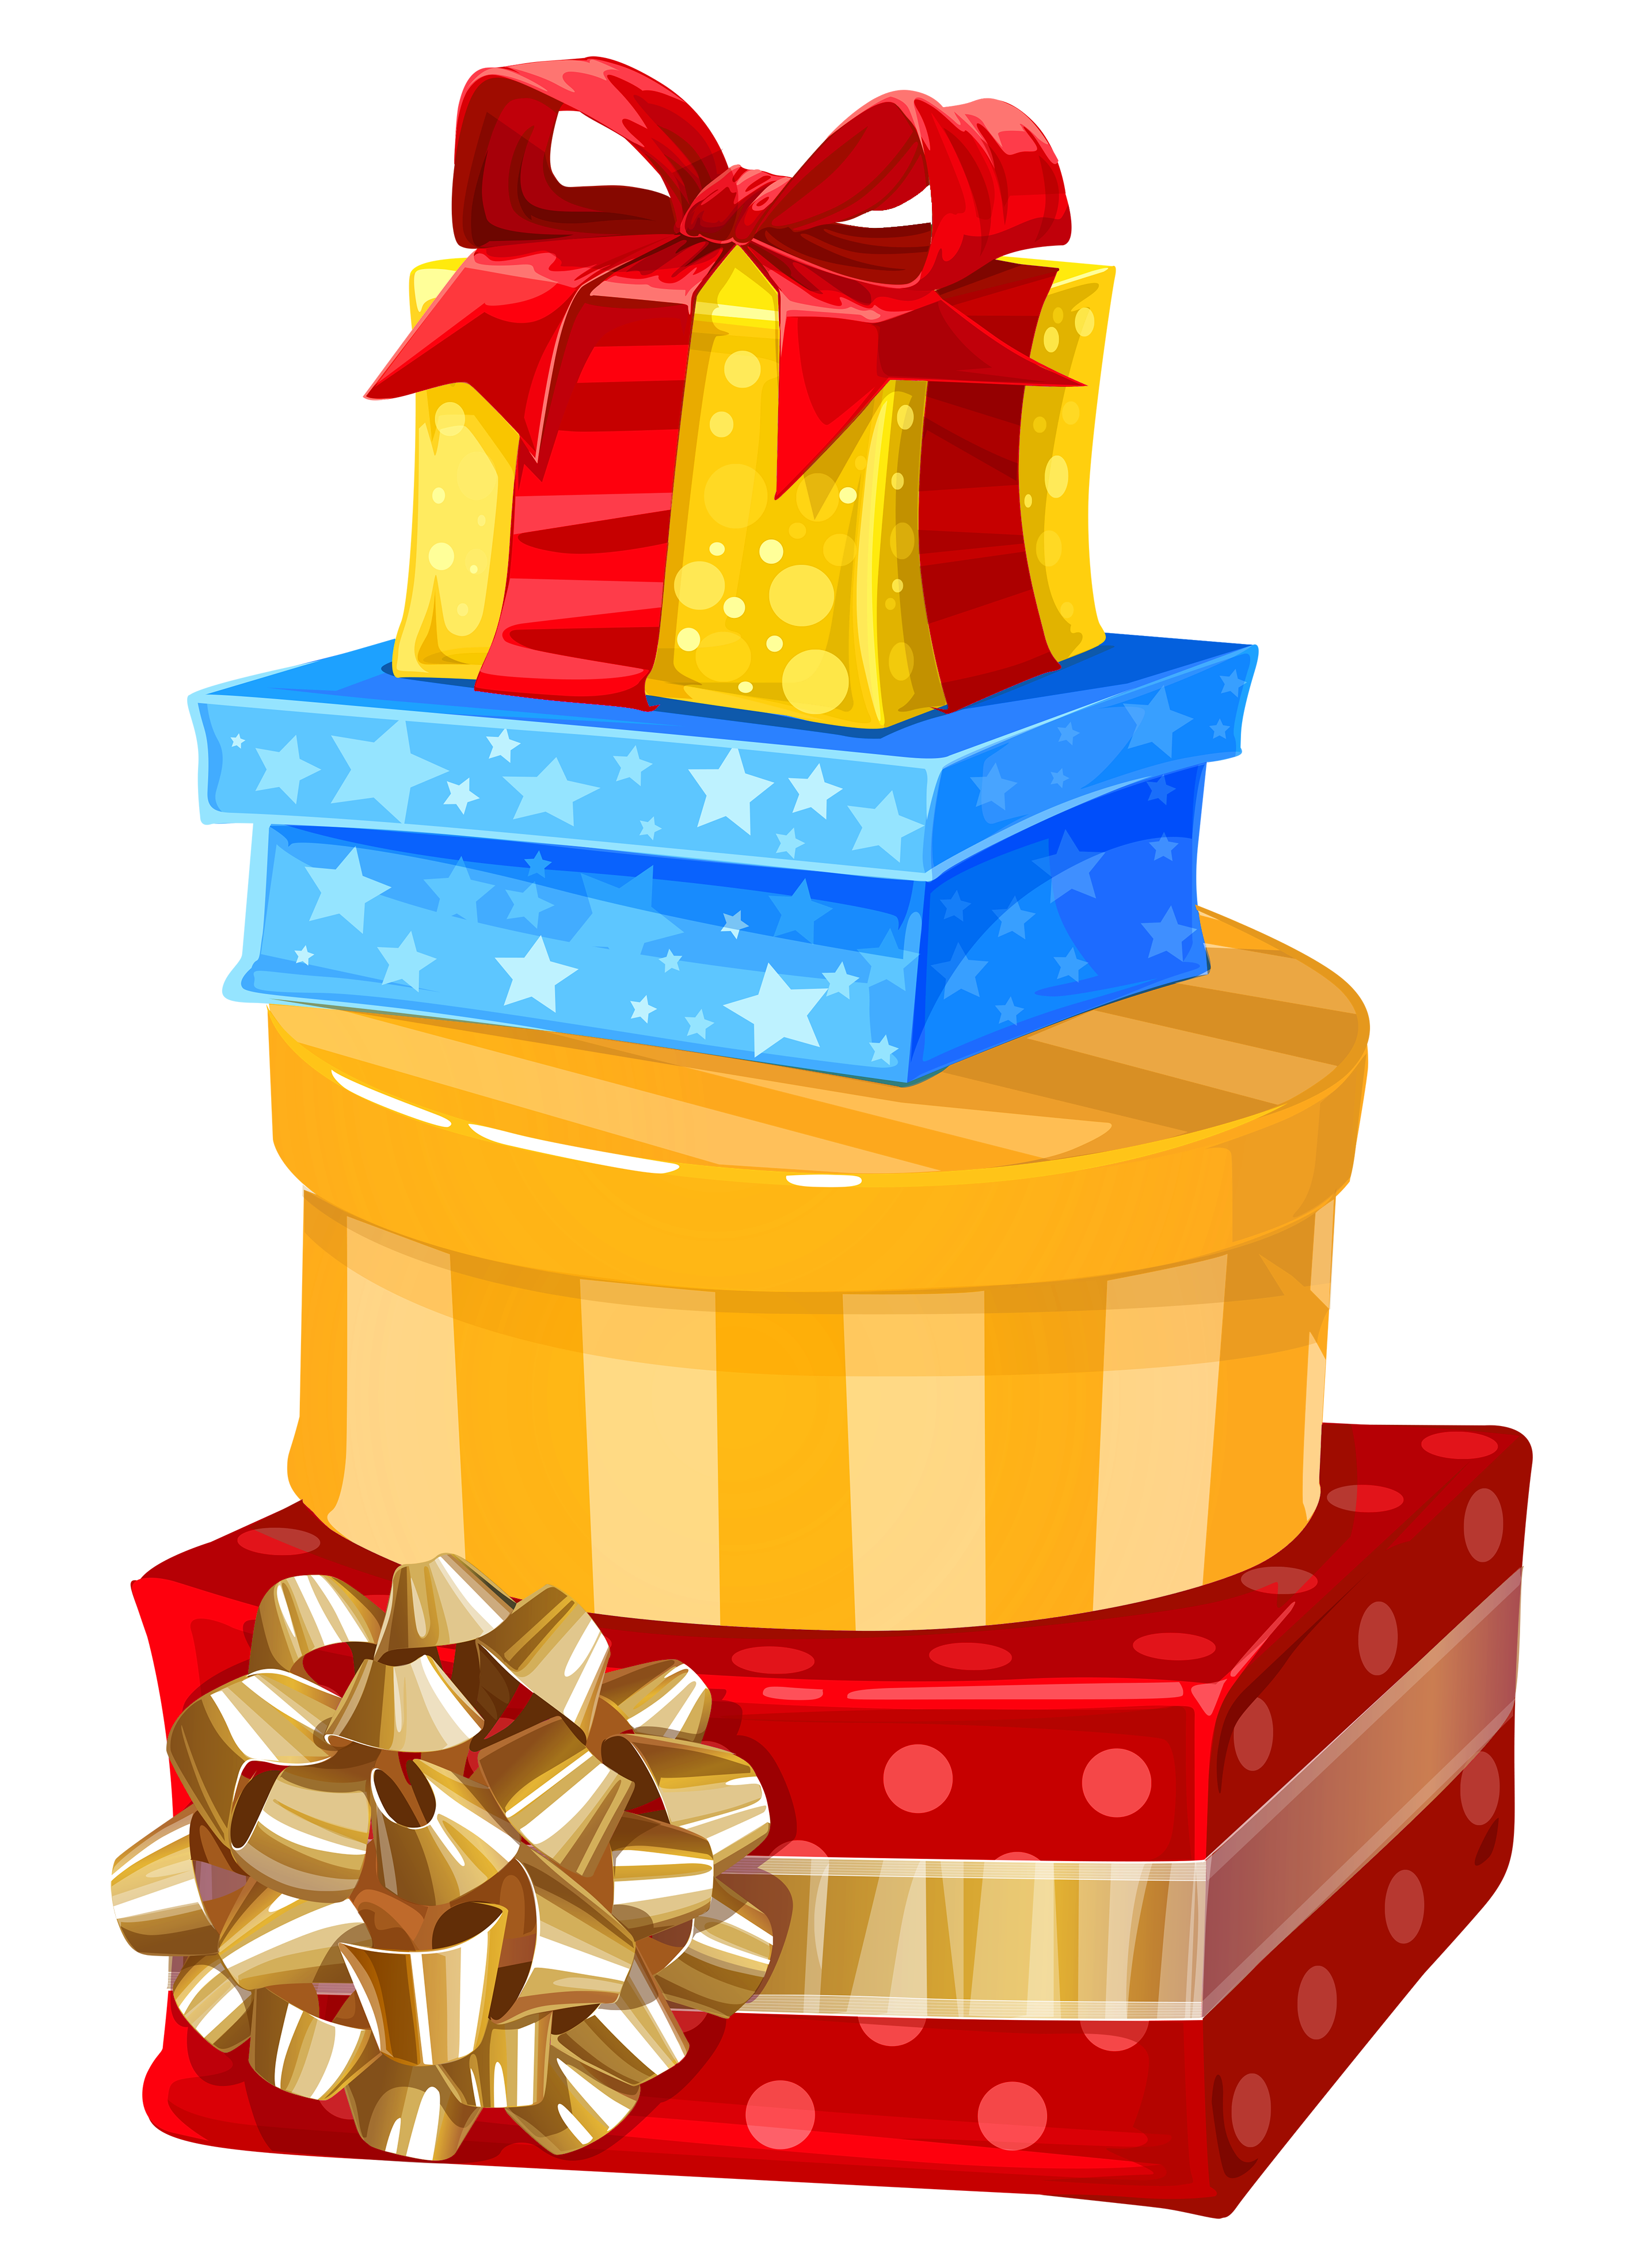 Gift boxes png. Clipart gallery yopriceville high